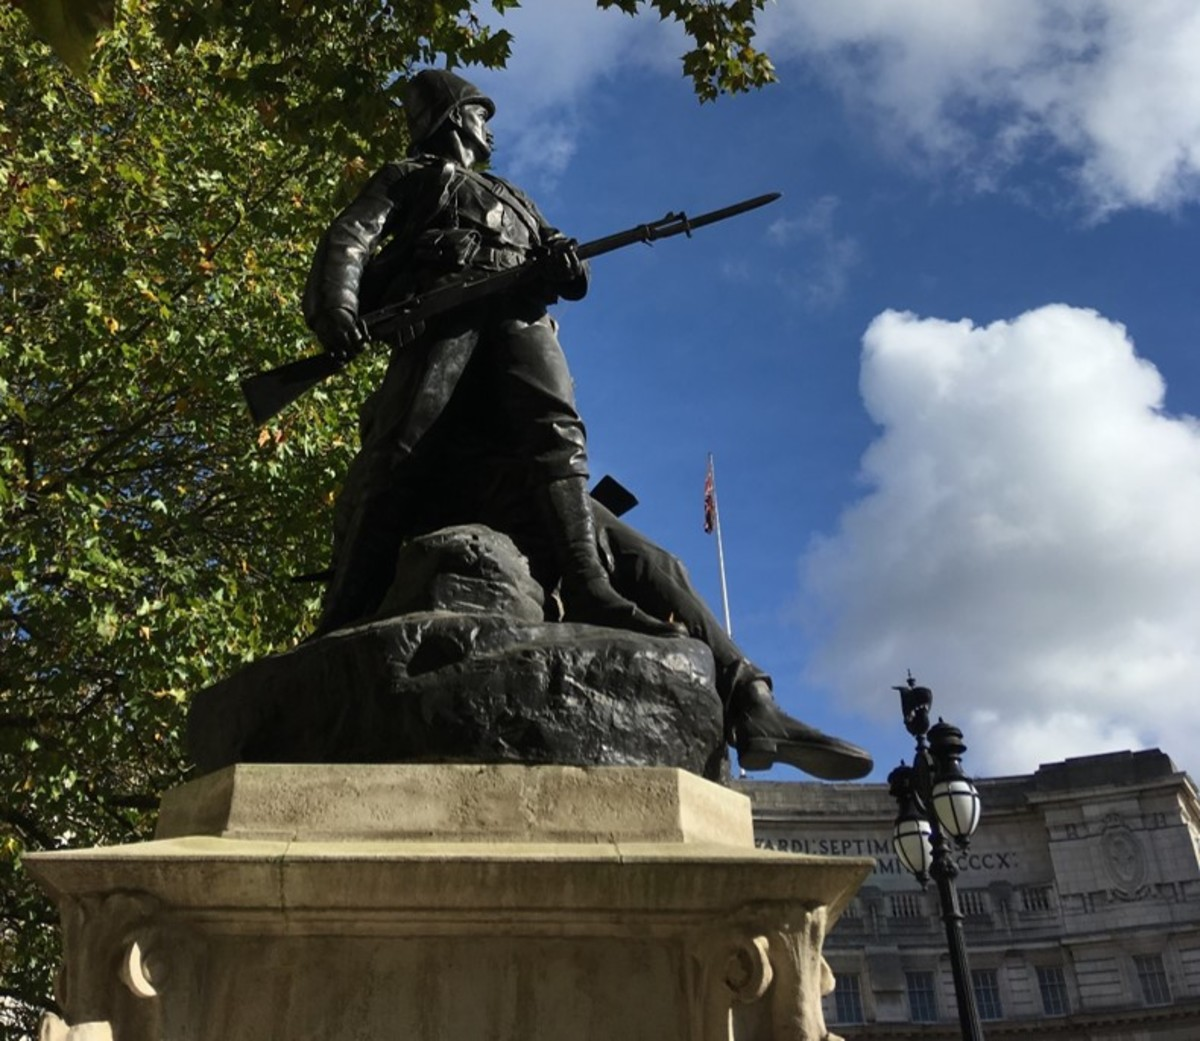 The Royal Marines Memorial in London